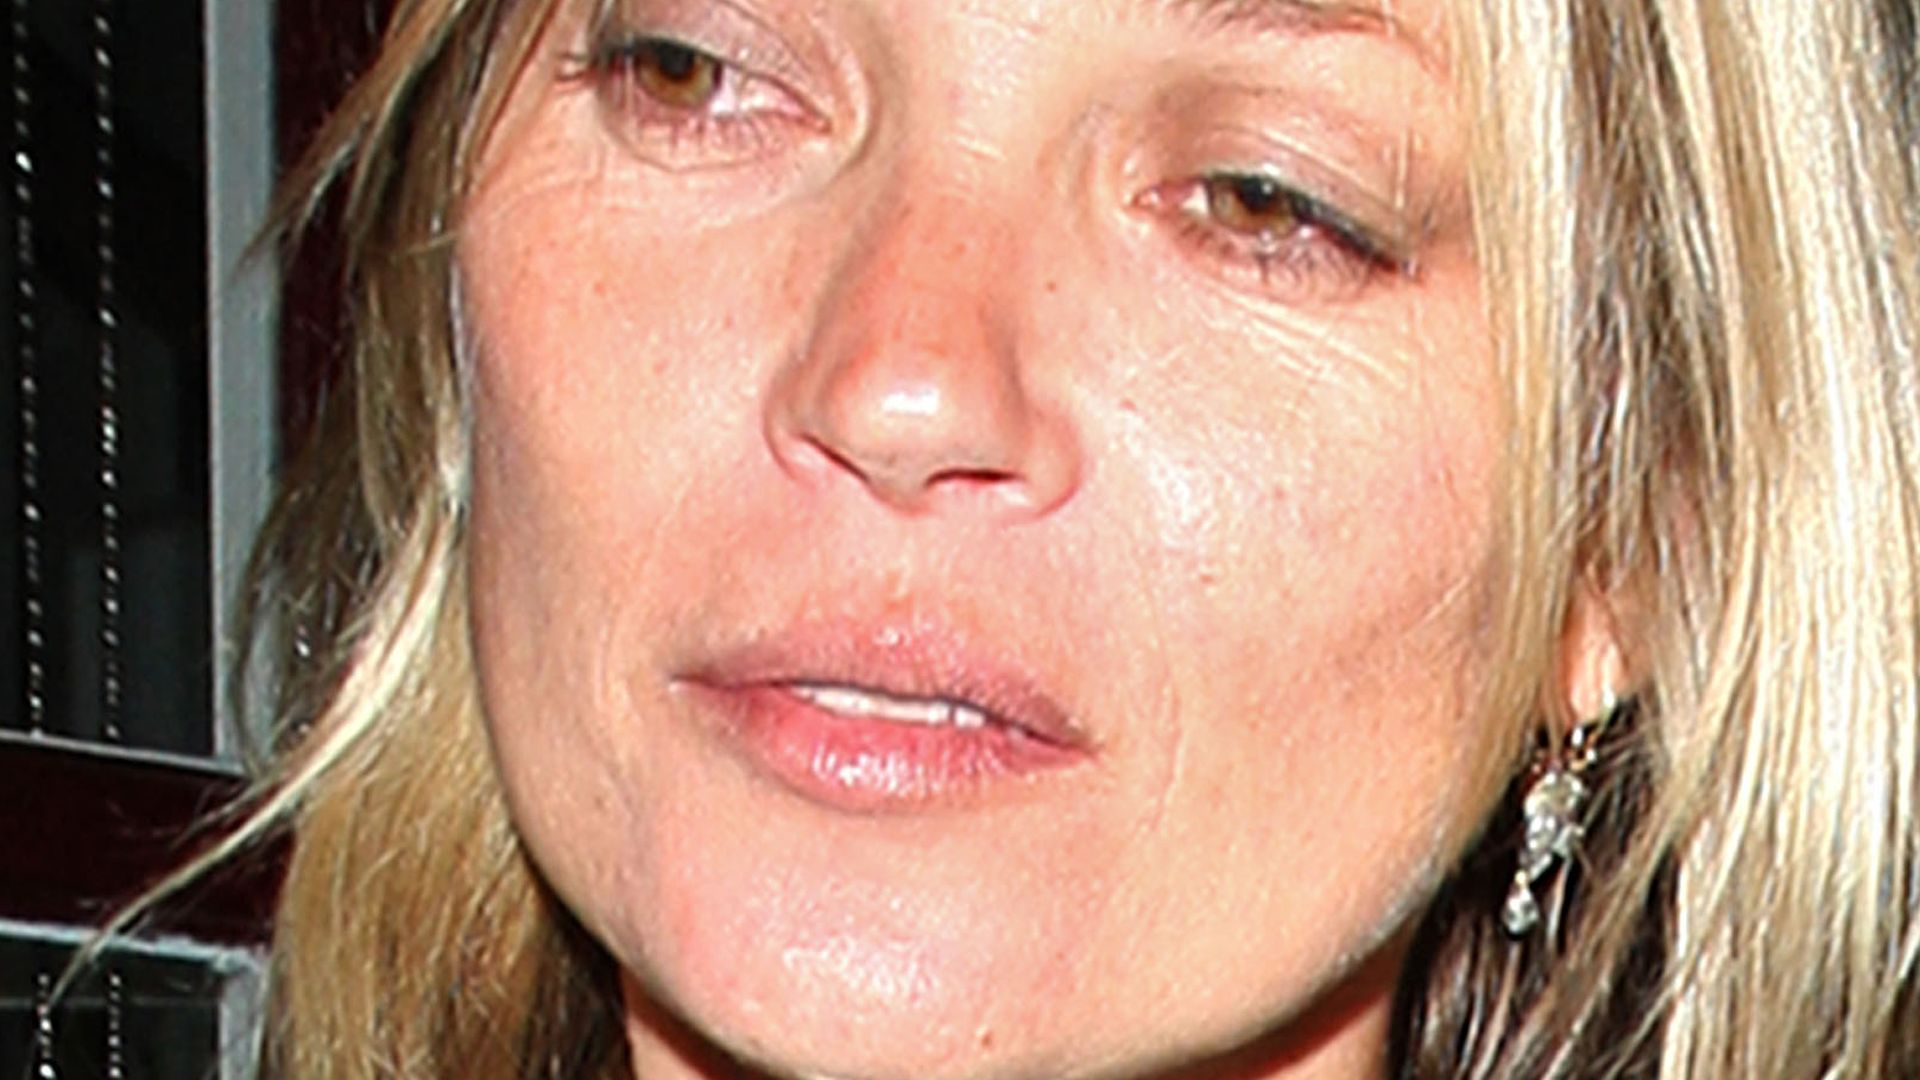 Kate moss pete doherty age difference dating 2